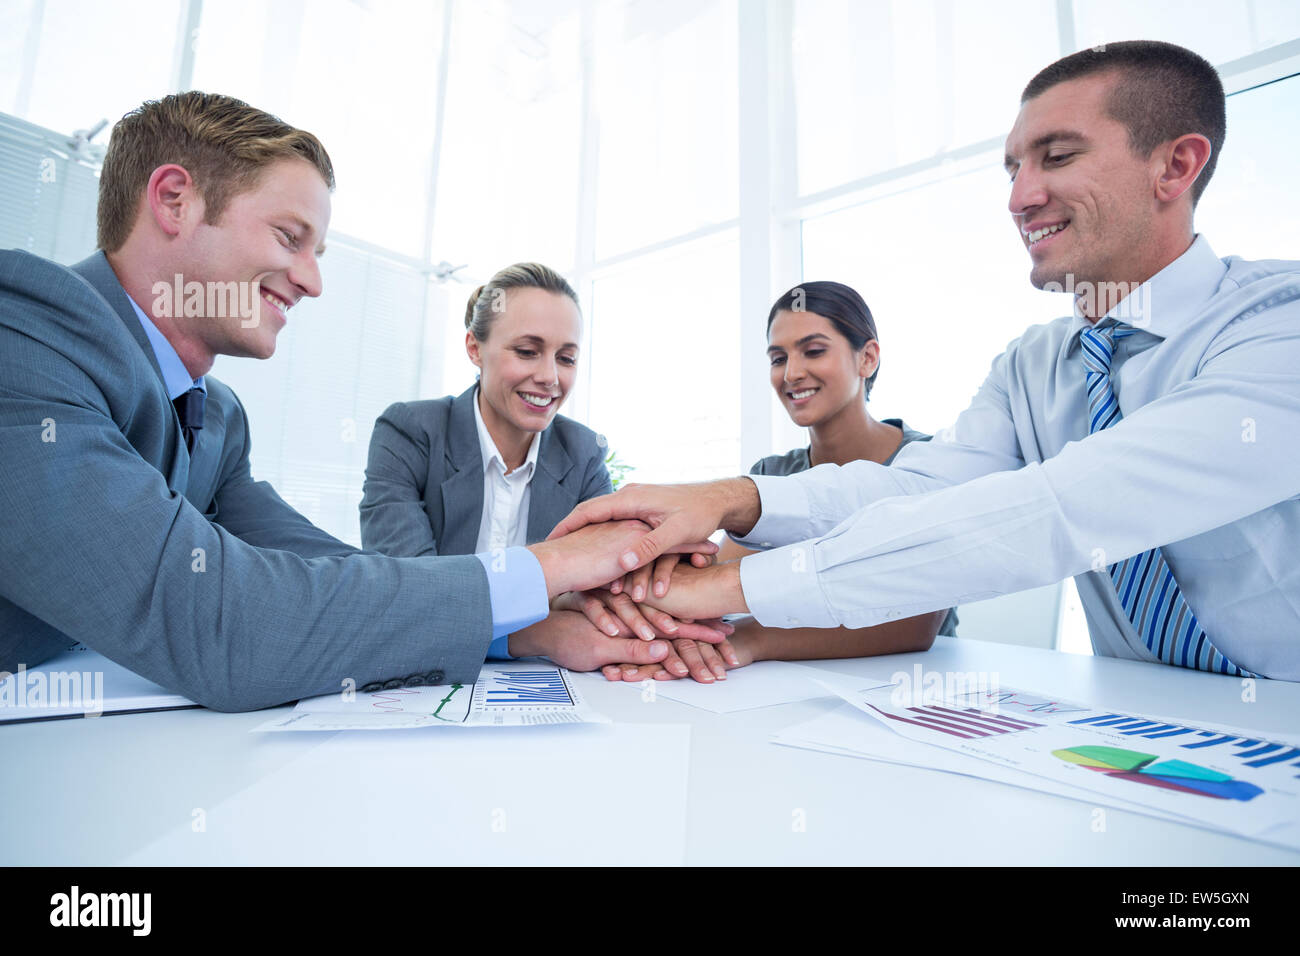 Business team celebrating a good job - Stock Image